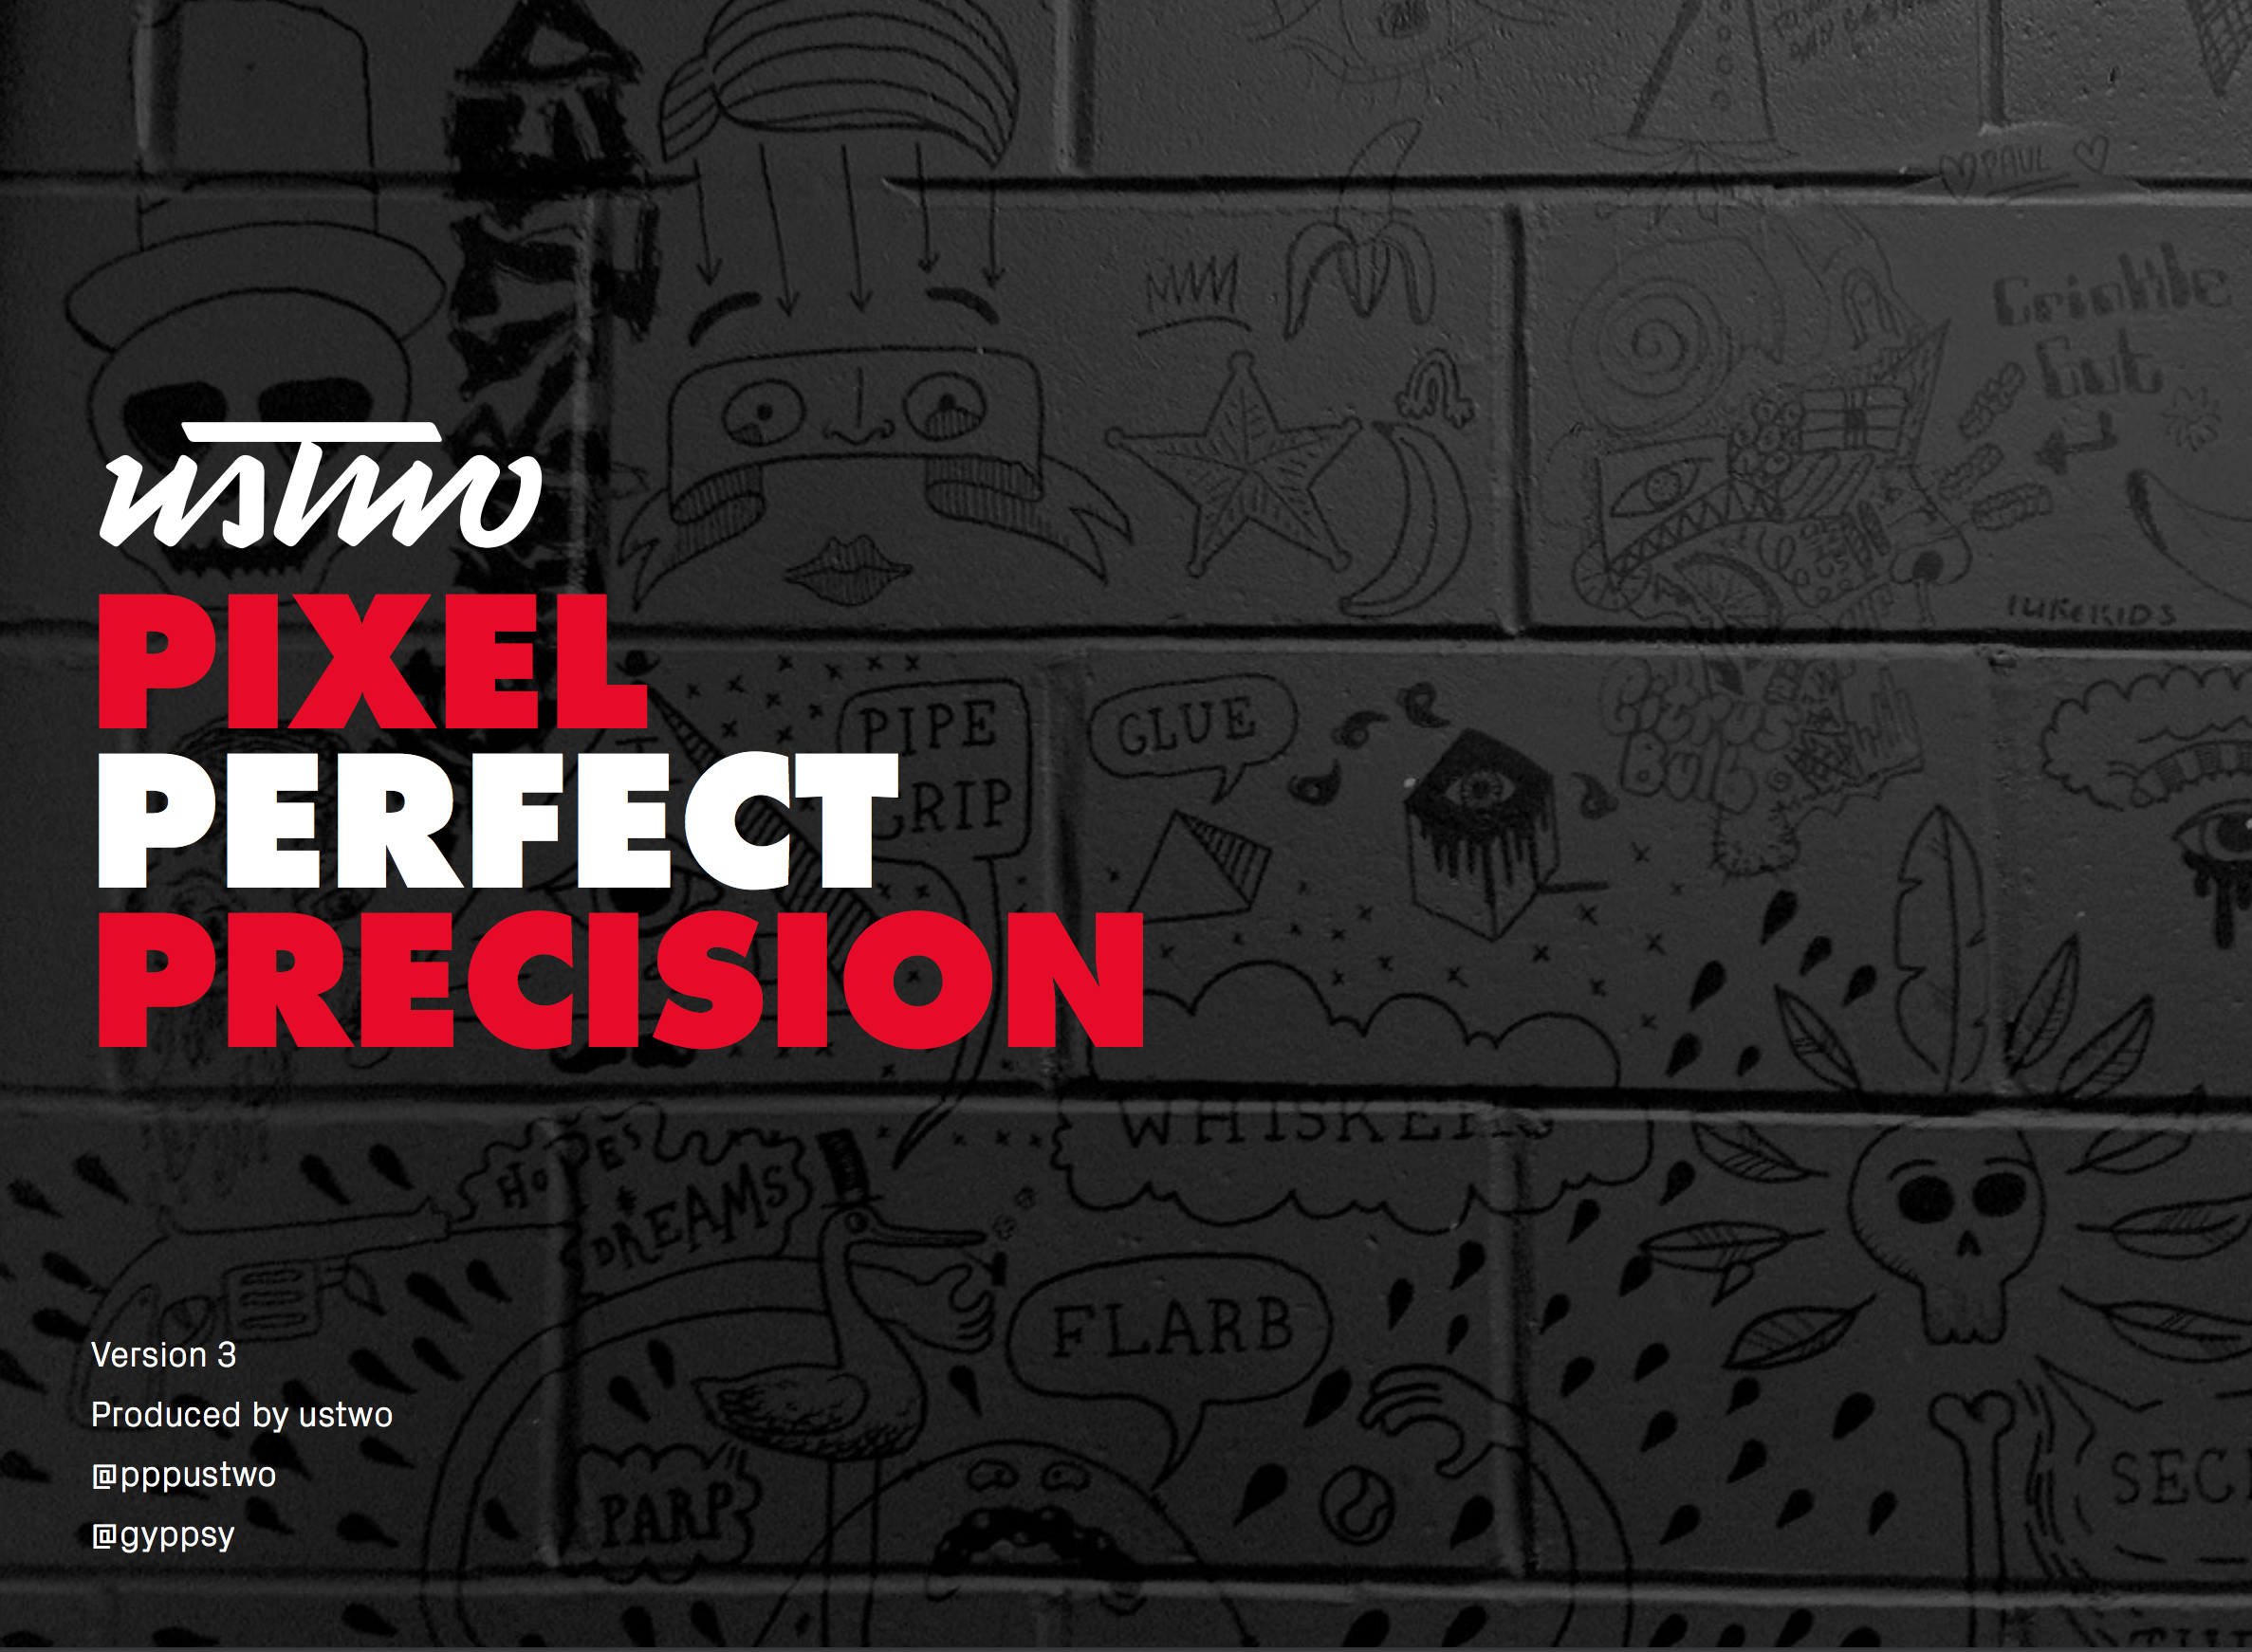 blog introcrea ebooks gratuitos que todo diseñador debe leer Pixel Perfect Precision Handbook 3